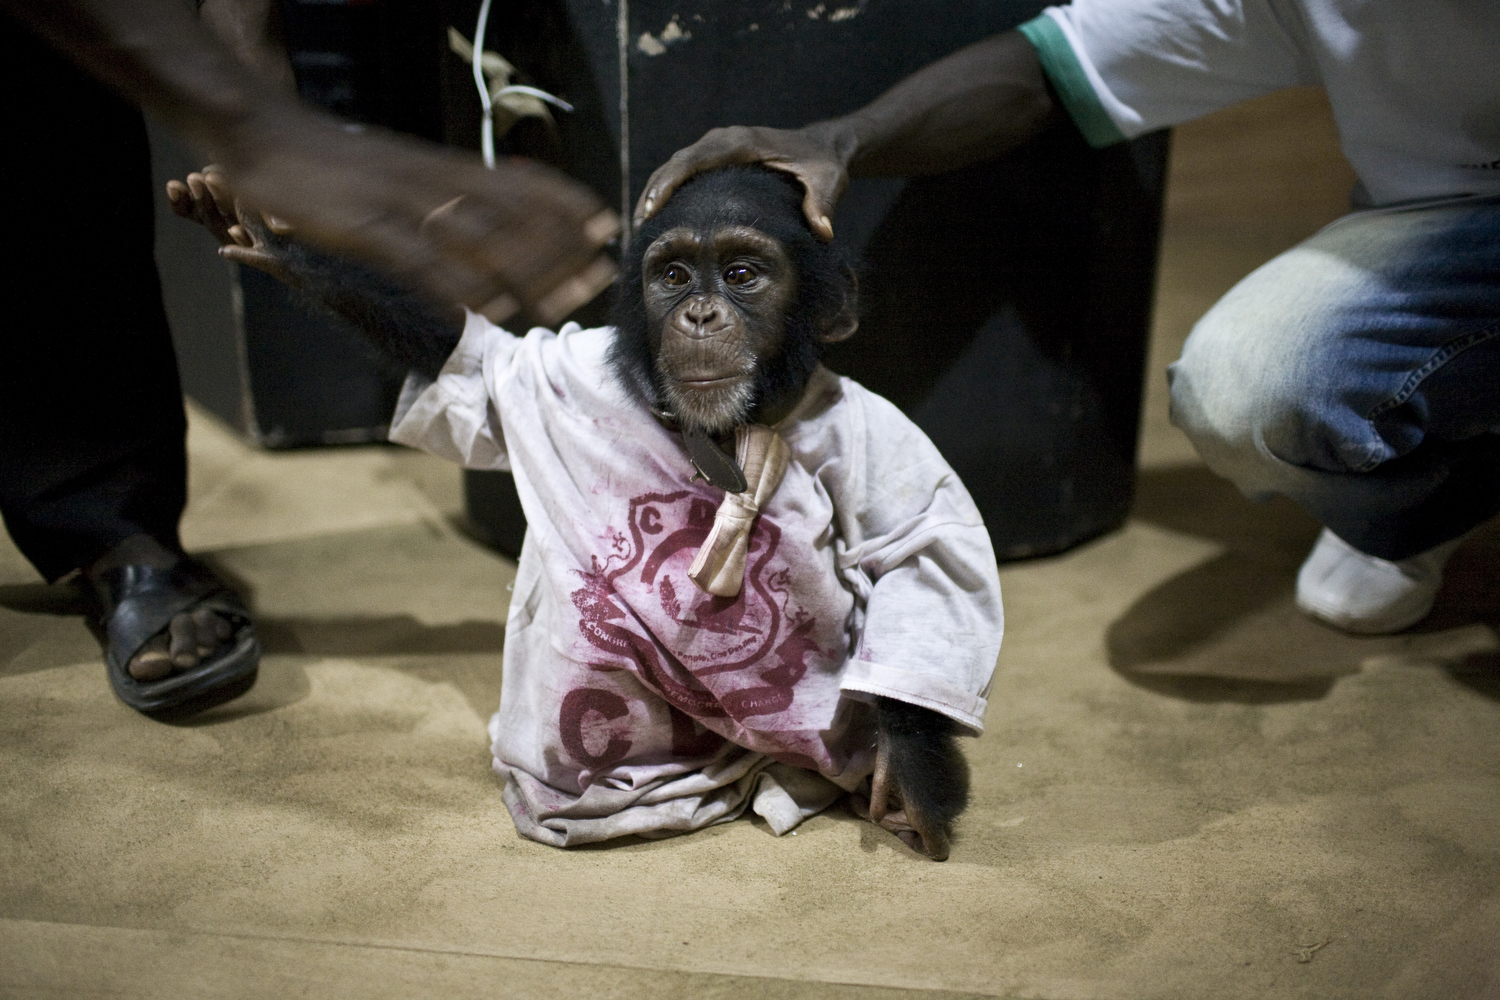 The presidential campaign drew heavily on images of primates, animals that are often anthropomorphized in Liberian culture. Liberia's opposition party, Congress for Democratic Change (CDC), embraced chimpanzees and other animals as their mascots. Here, a chimp is dressed in an opposition T-shirt and a bow tie.